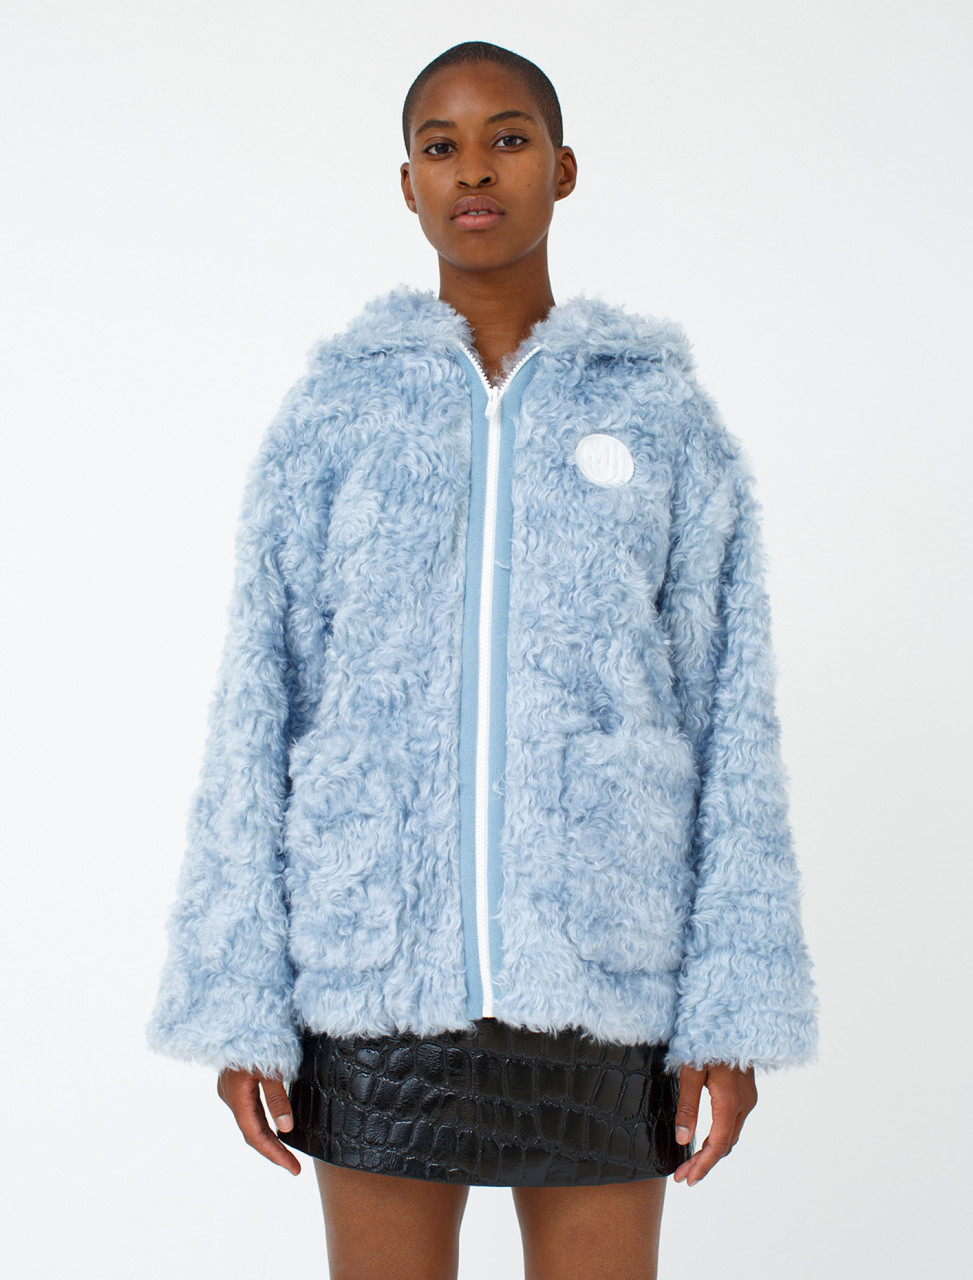 Oversized Eco-Fur Hooded Pullover